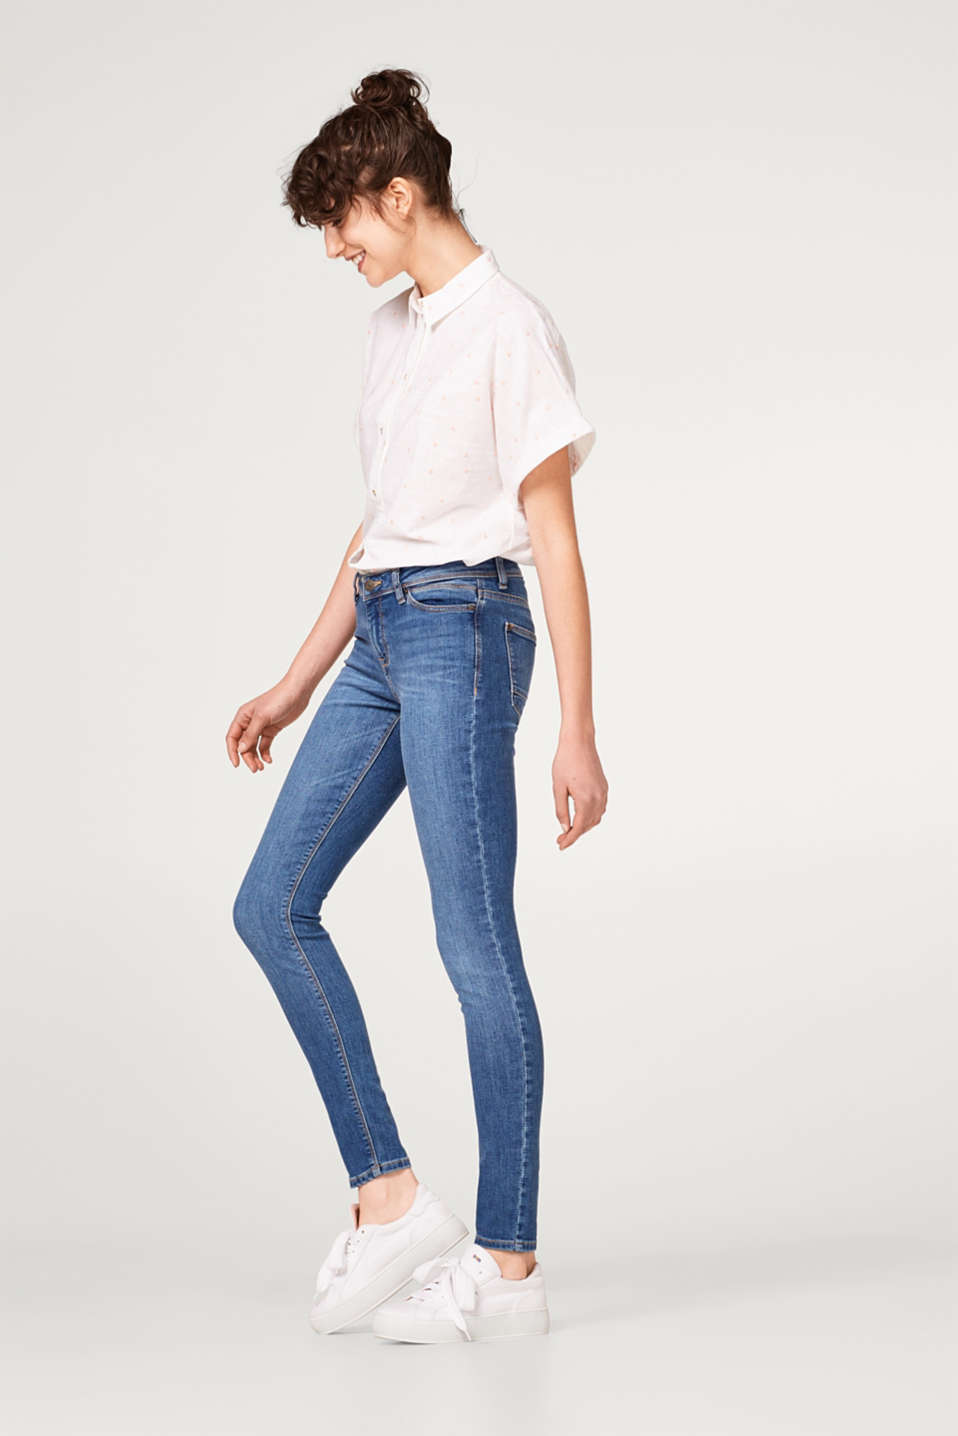 Esprit - Stretch jeans with fashionable ticket pocket